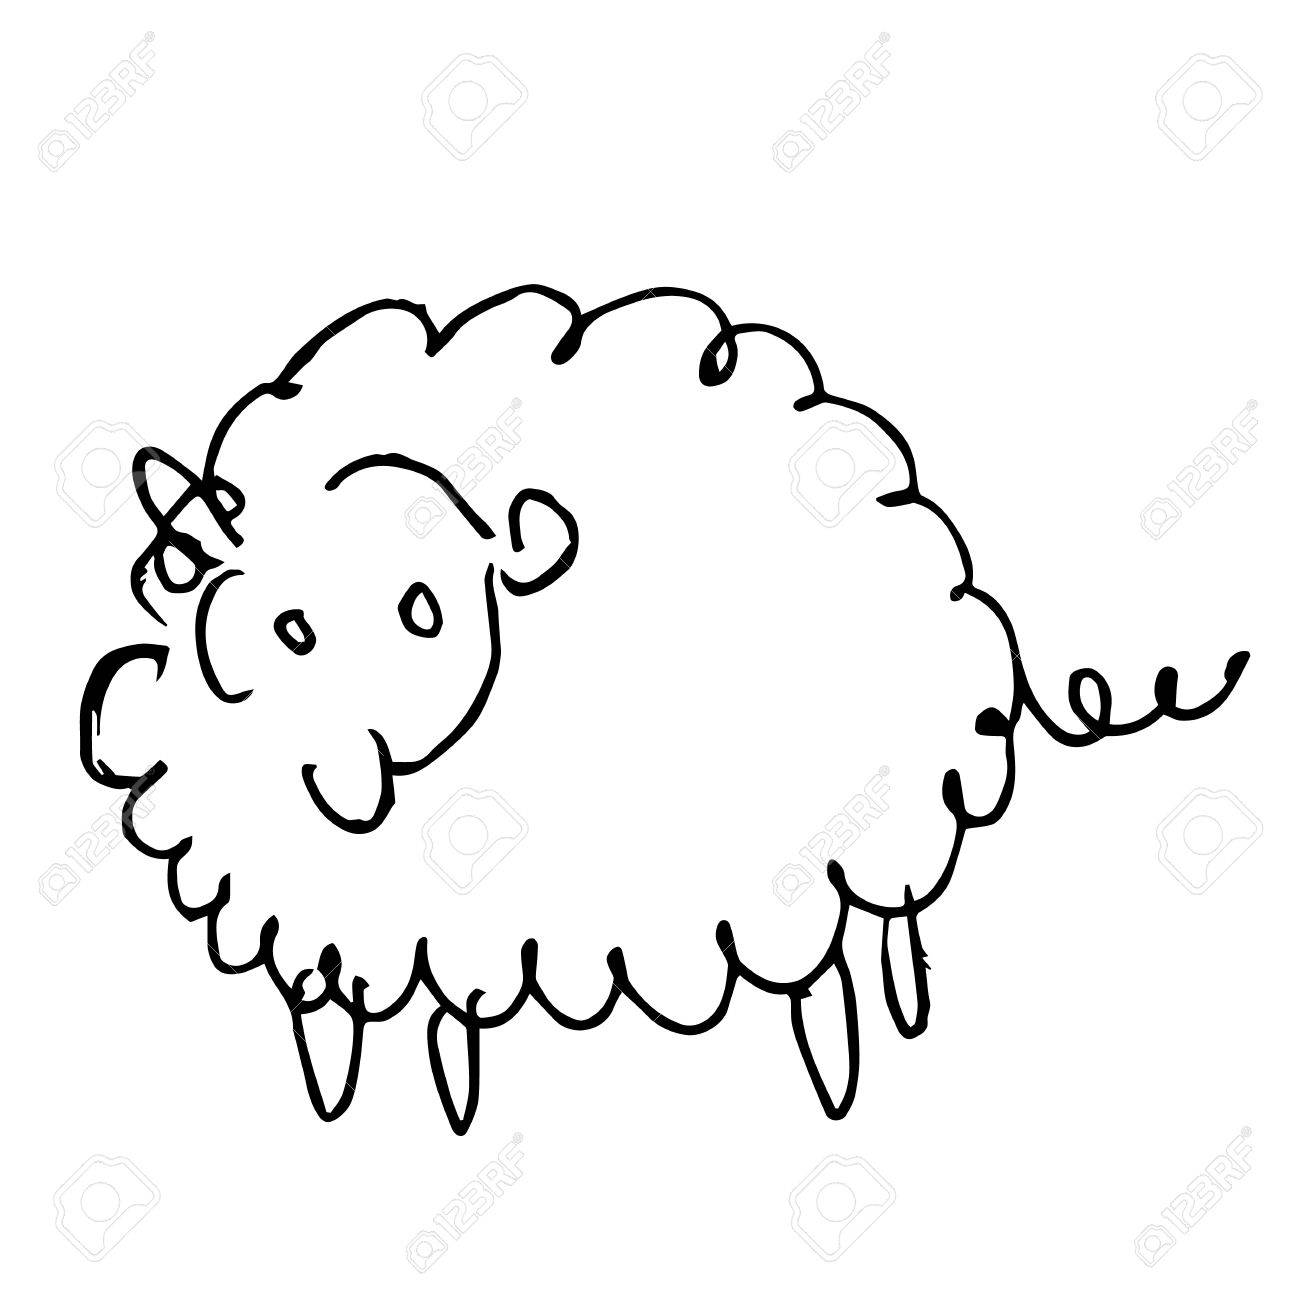 freehand sketch illustration of sheep doodle hand drawn in kid style stock vector 58044495